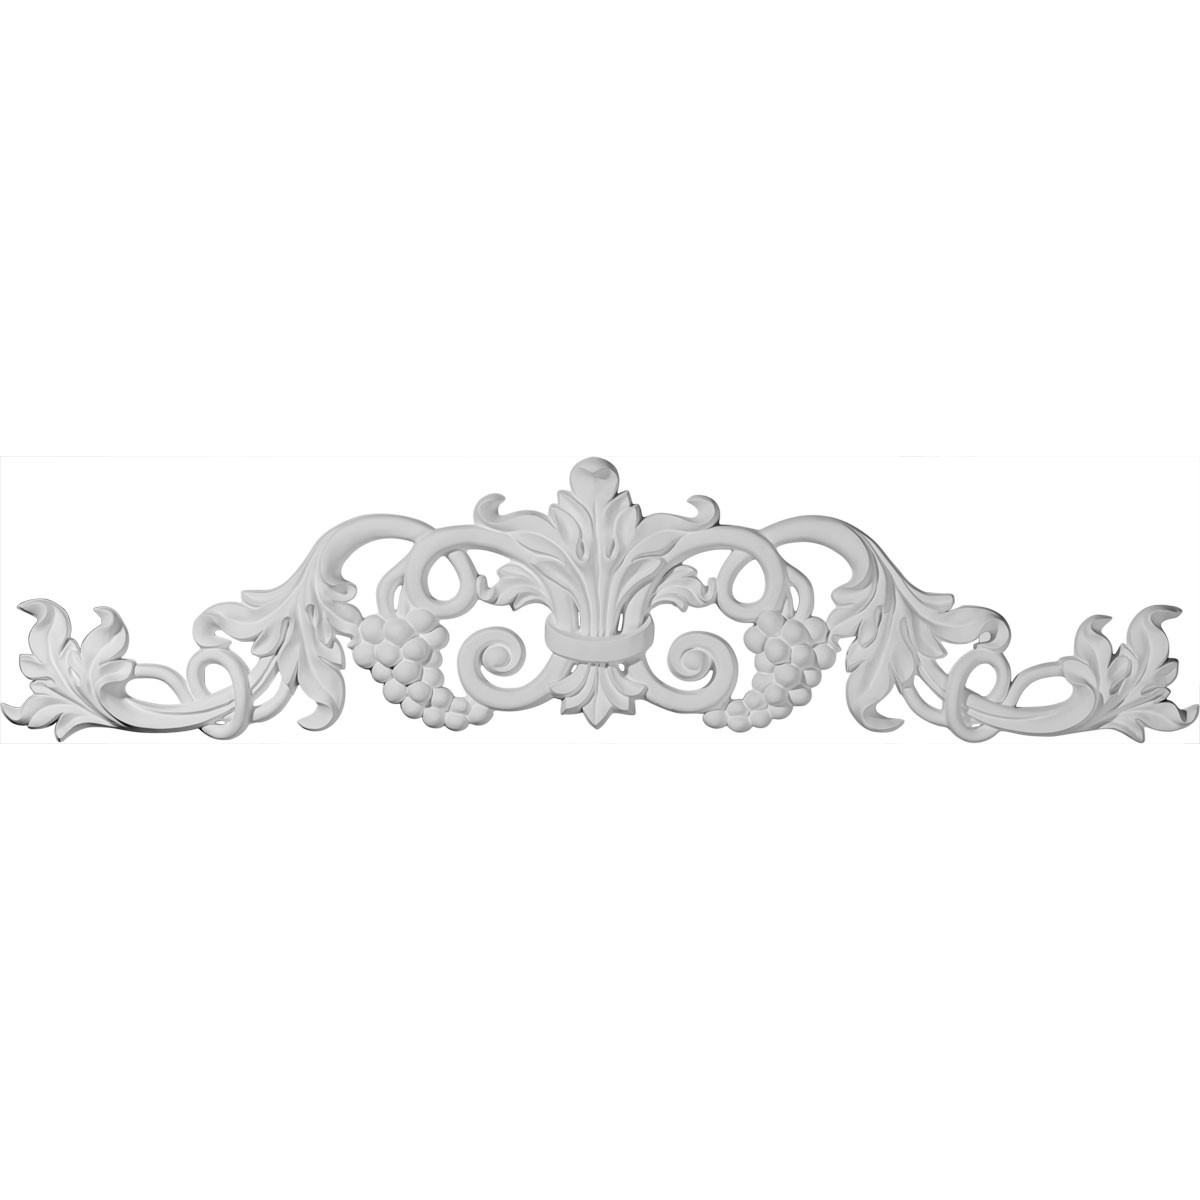 """EM-ONL39X08X02GR - 39""""W  x 8 7/8""""H x 1 3/8""""P Large Grape and Leaf Center with Scrolls Onlay"""